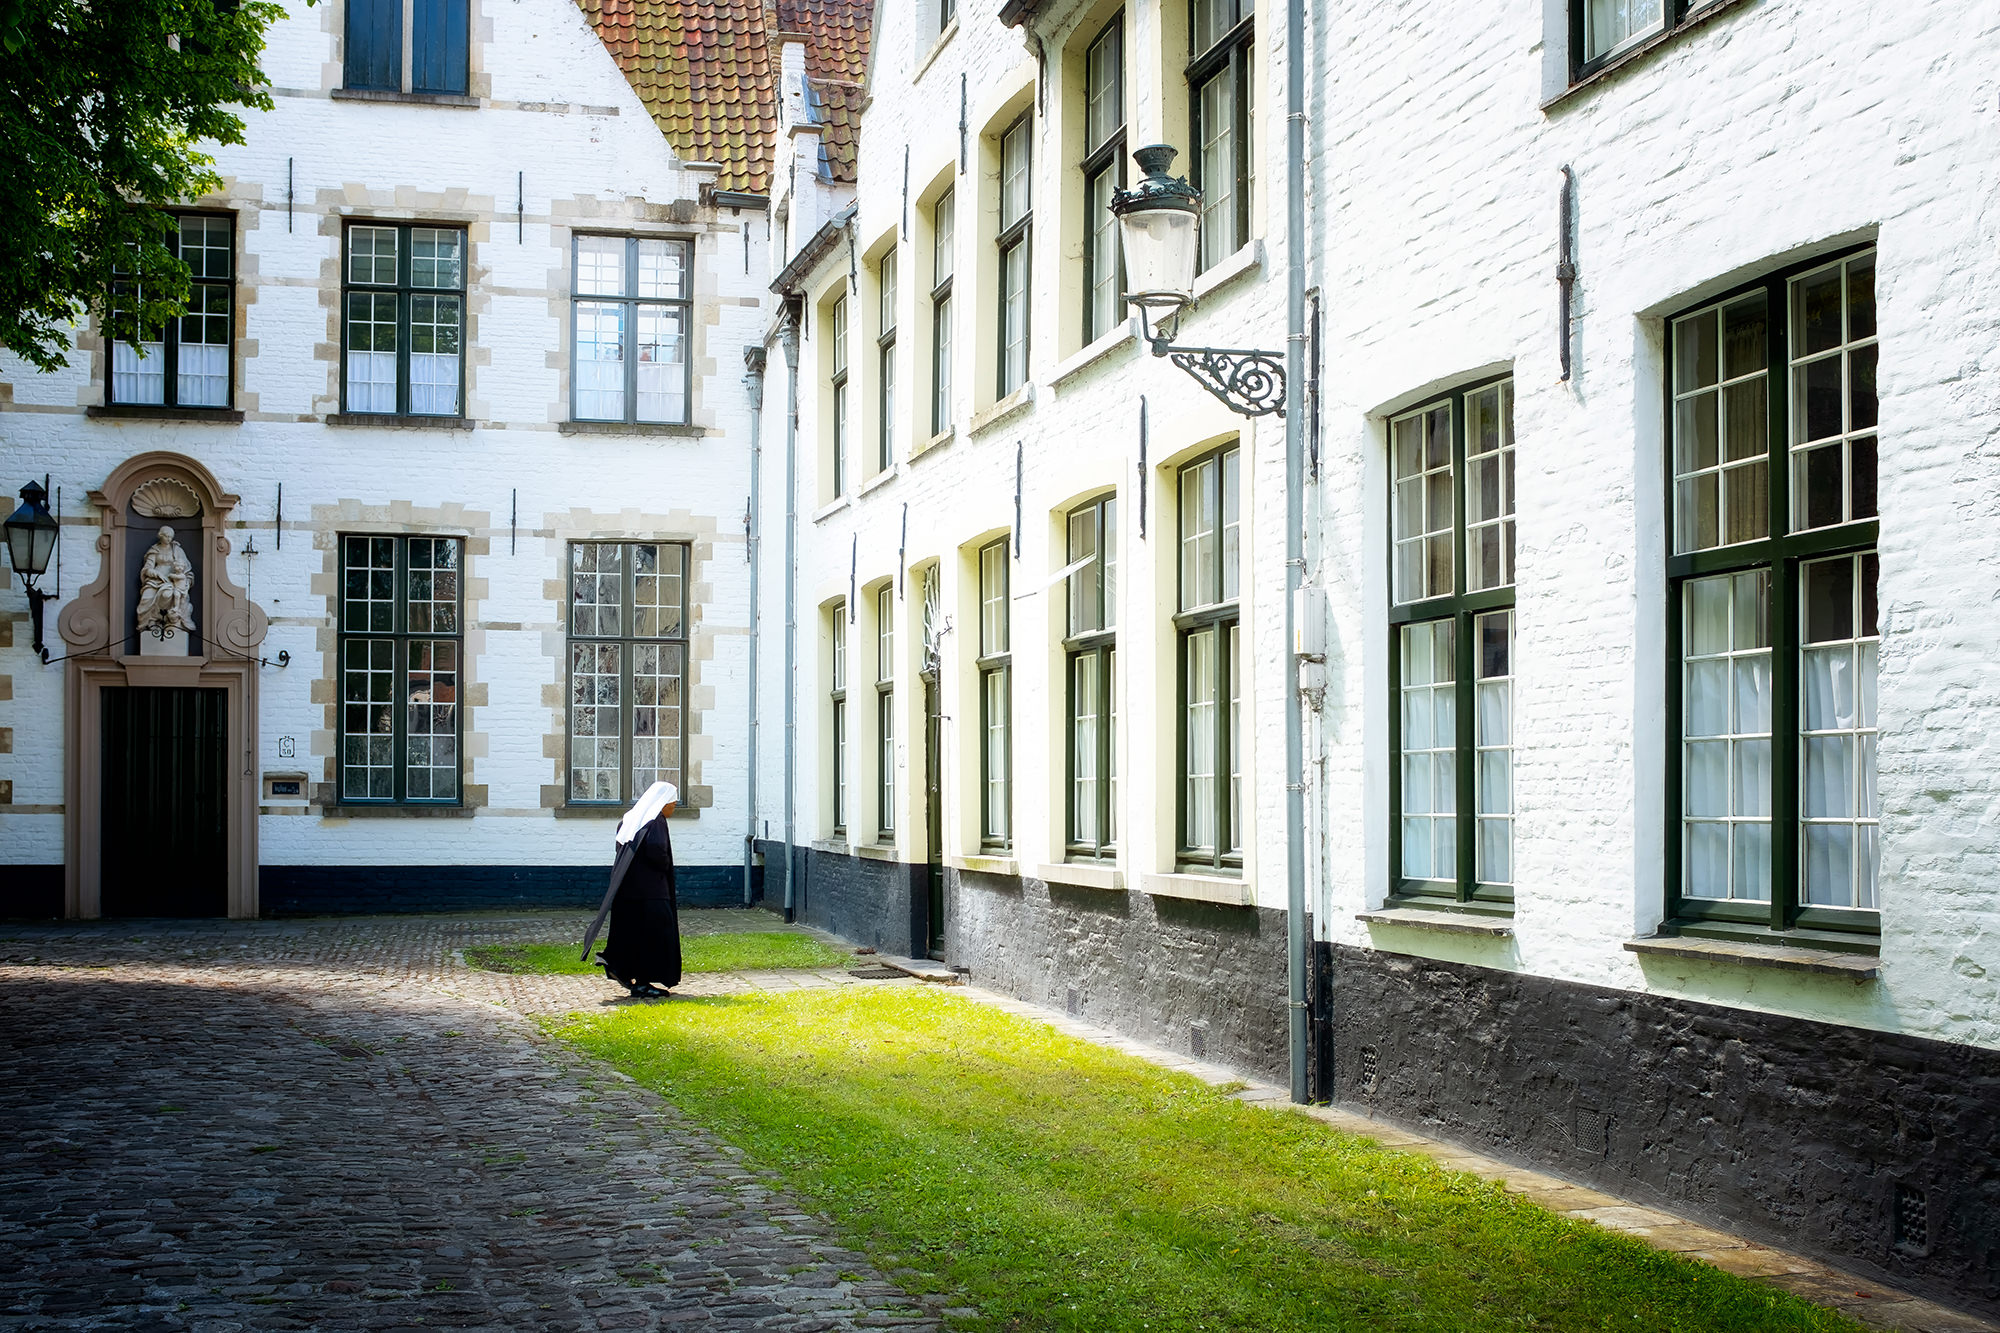 Nun of the Begijnhof convent   Click image to enlarge